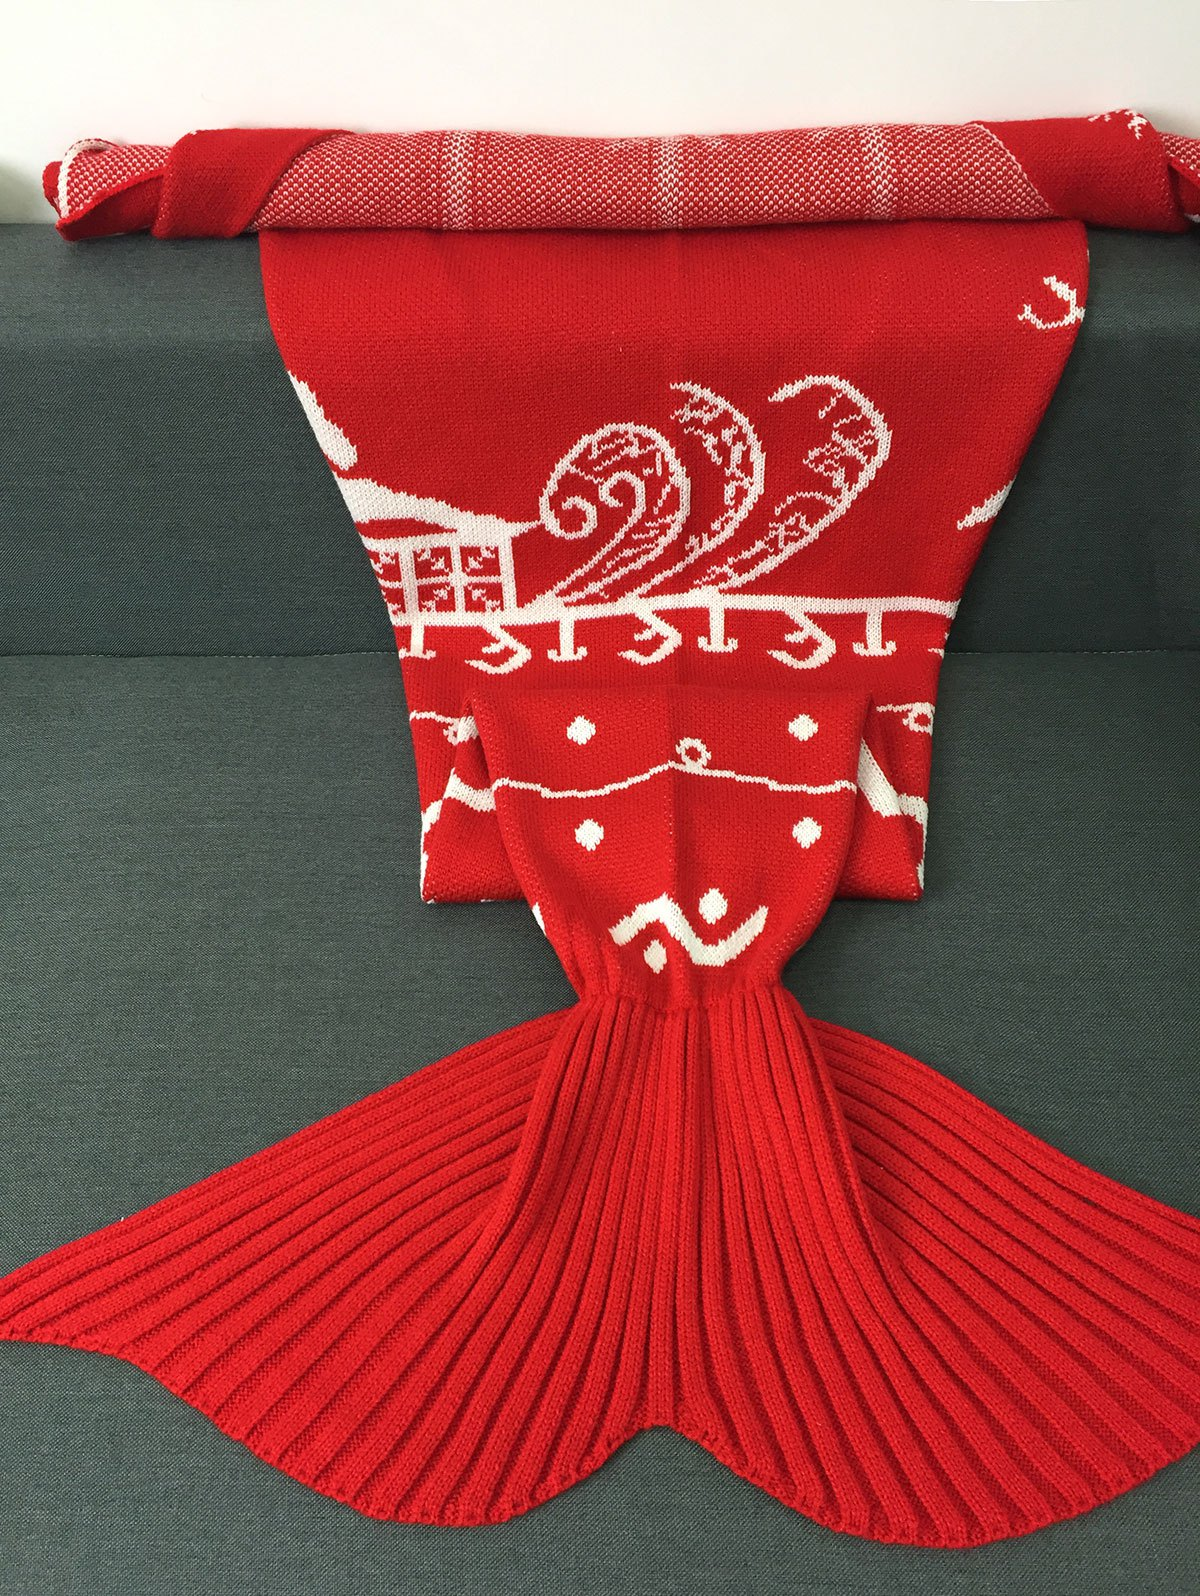 High Quality Knitted Christmas Snows Design Mermaid Tail Blanket - RED